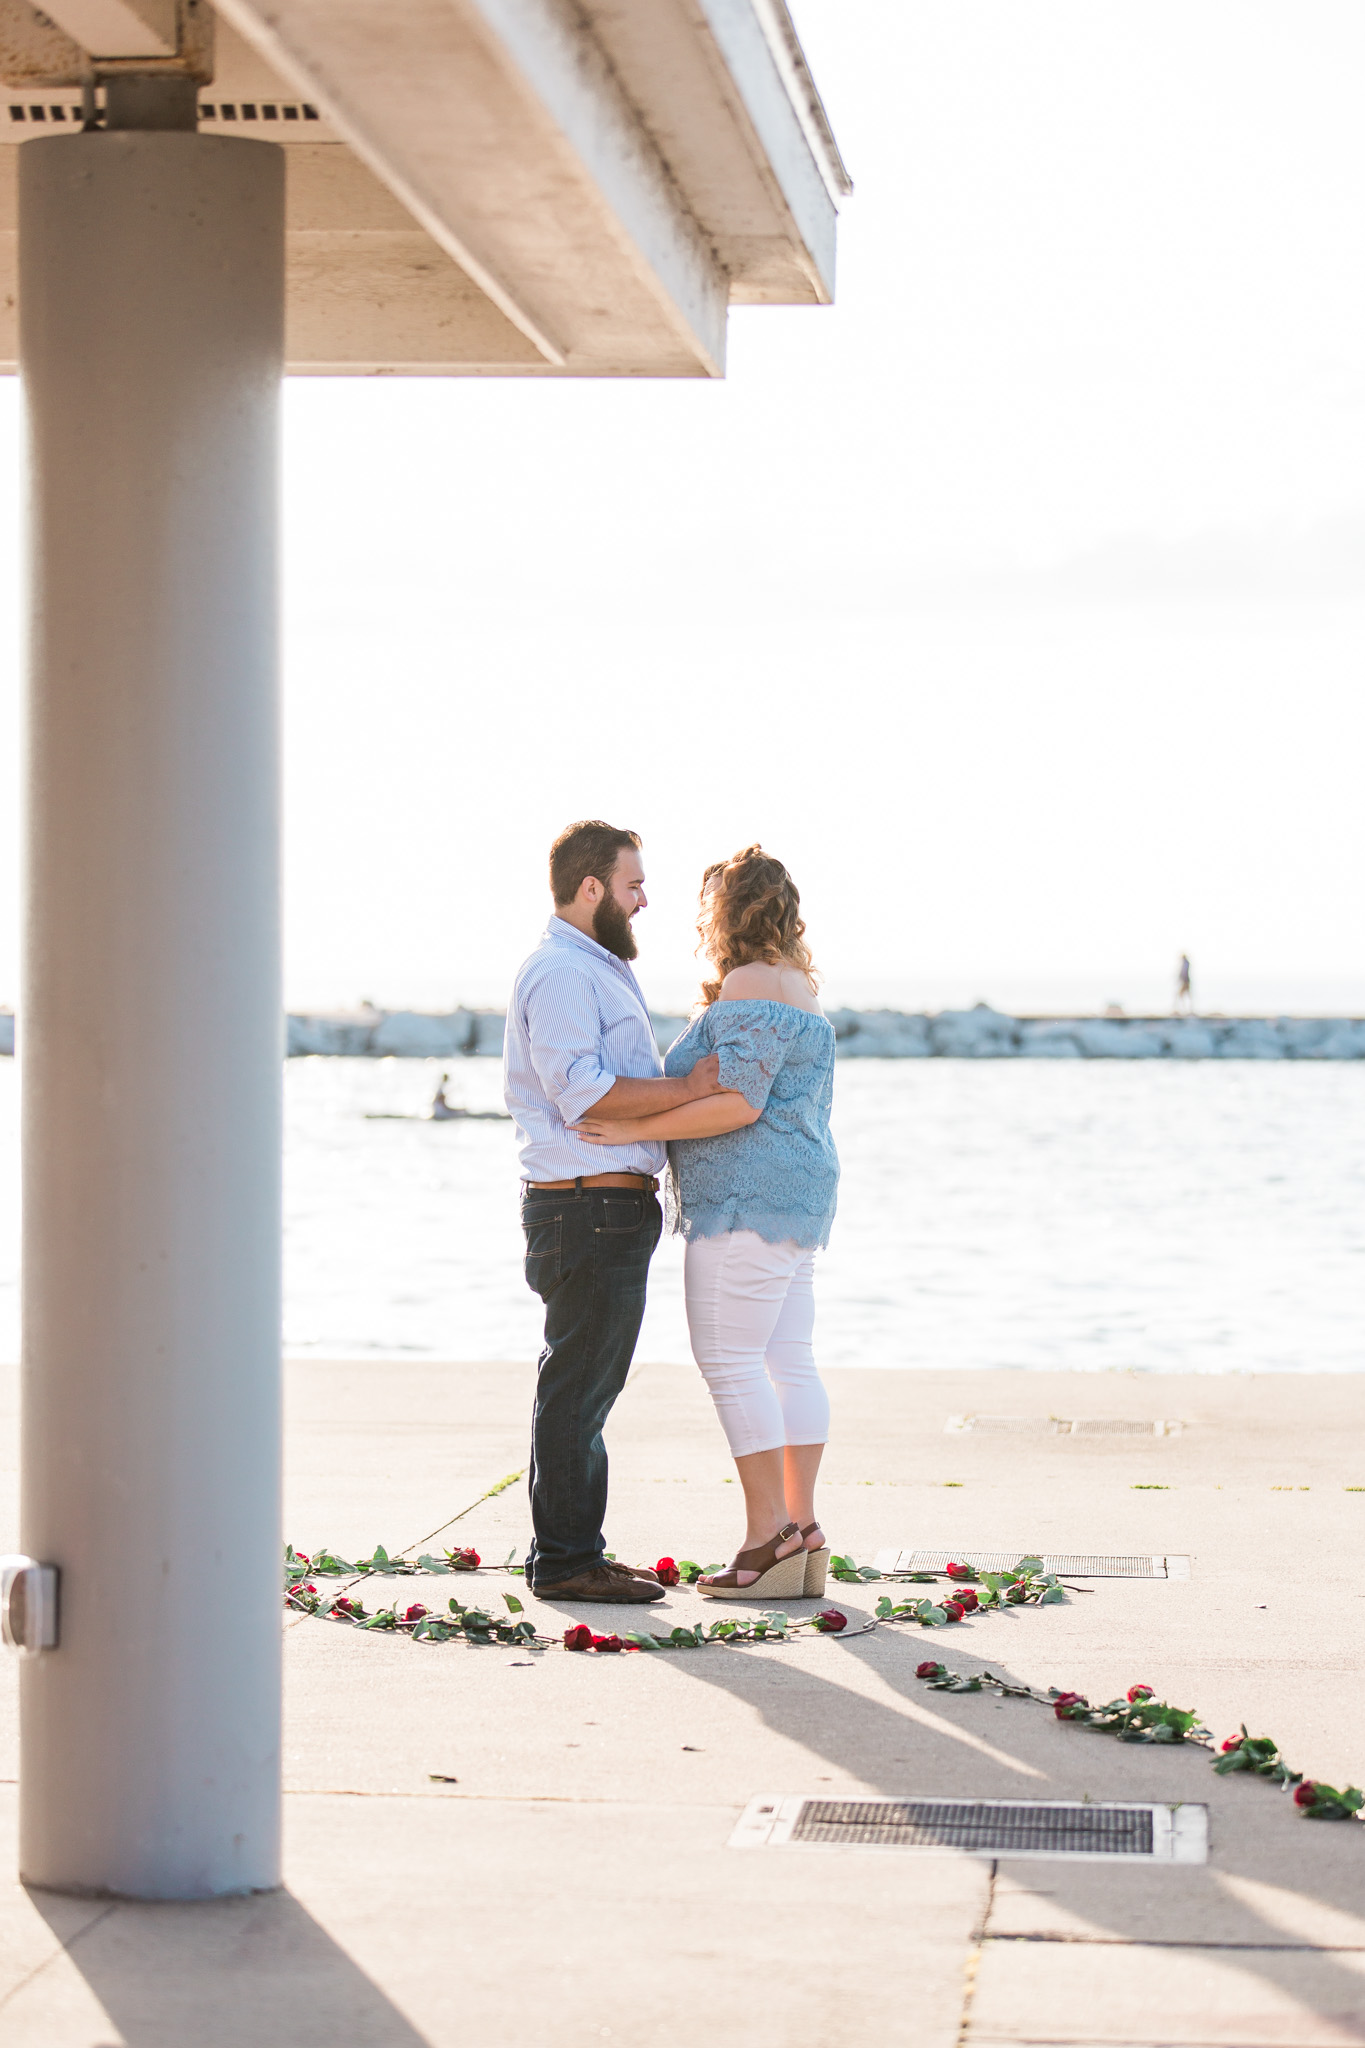 Romantic Petoskey Michigan Proposal on the Pier with Rose Trail | How He Asked | She Said Yes | Laurenda Marie Photography